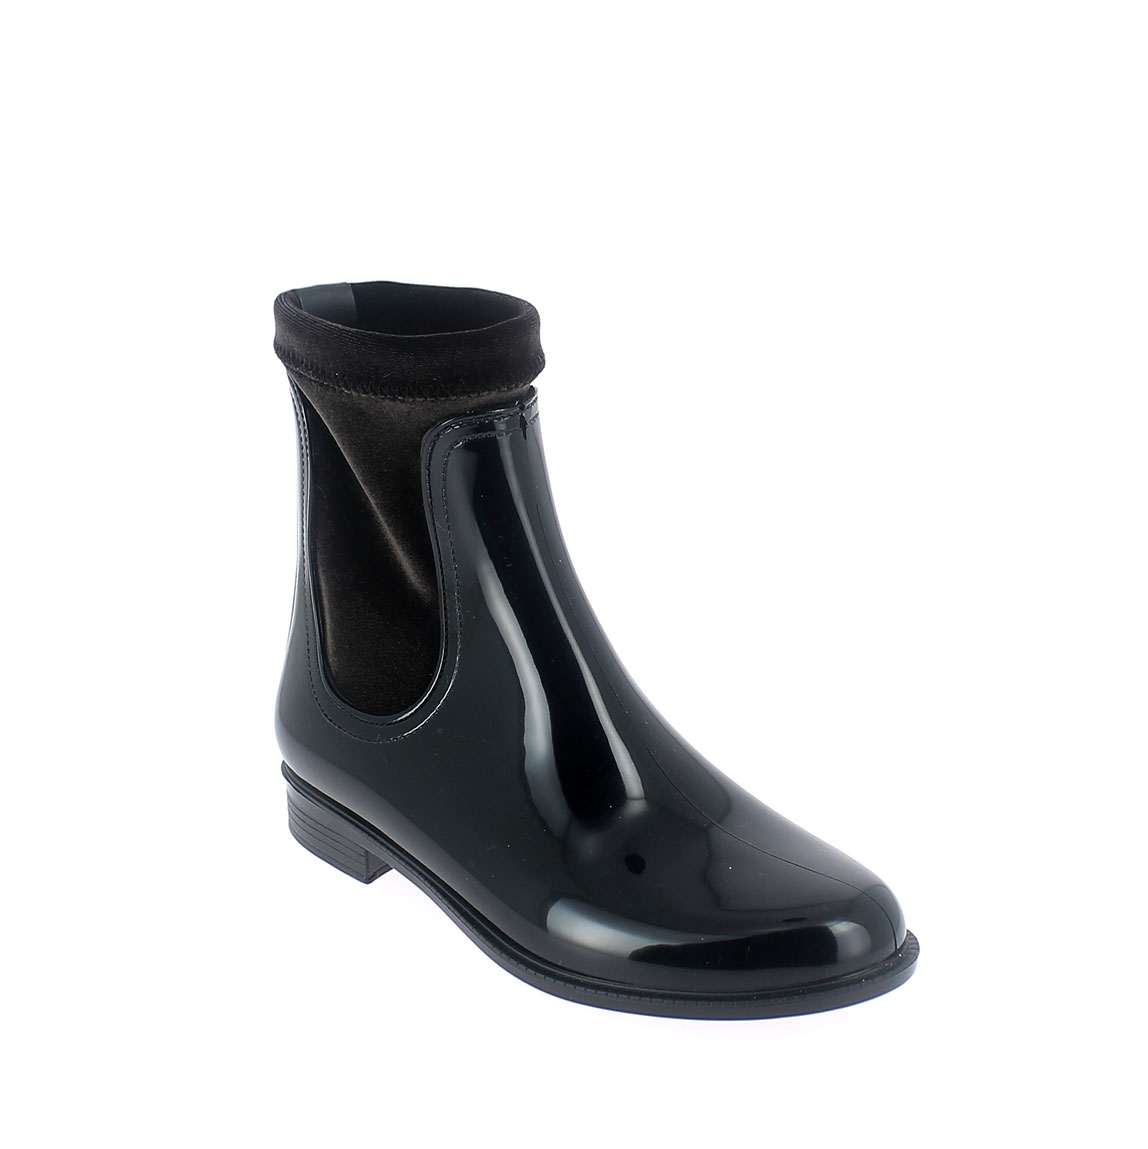 Chelsea boot in Black-Brown pvc with stretch velvet lining